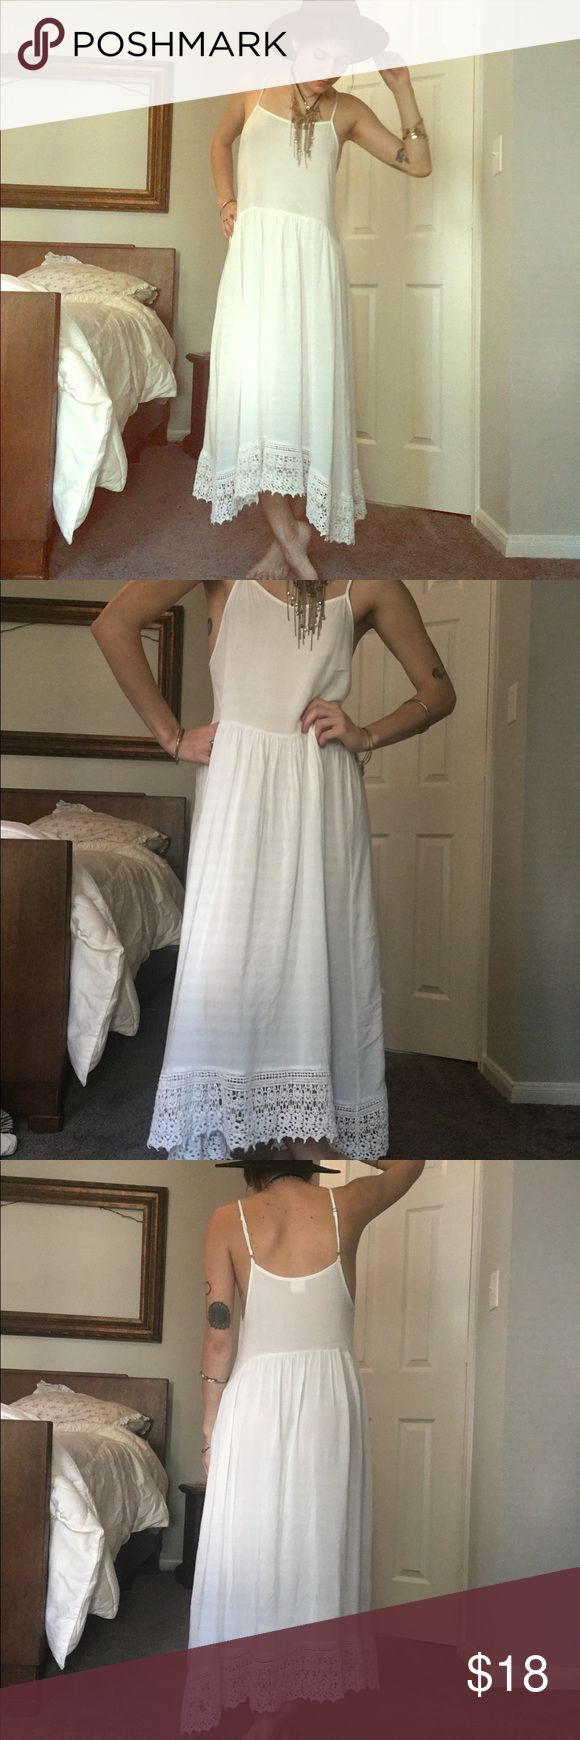 GORGEOUS SIMPLE FREE PEOPLE MAXI LACE SLIP DRESS White, classic, timeless, and versatile. Loved but in near perfect condition. Small microscopic discoloration at waist, which the price reflects. Semi-sheer but ok with nude undergarments. Can be dressed up or used as a slip but looks great by itself. Fits size xs- s best. Free People Dresses Maxi